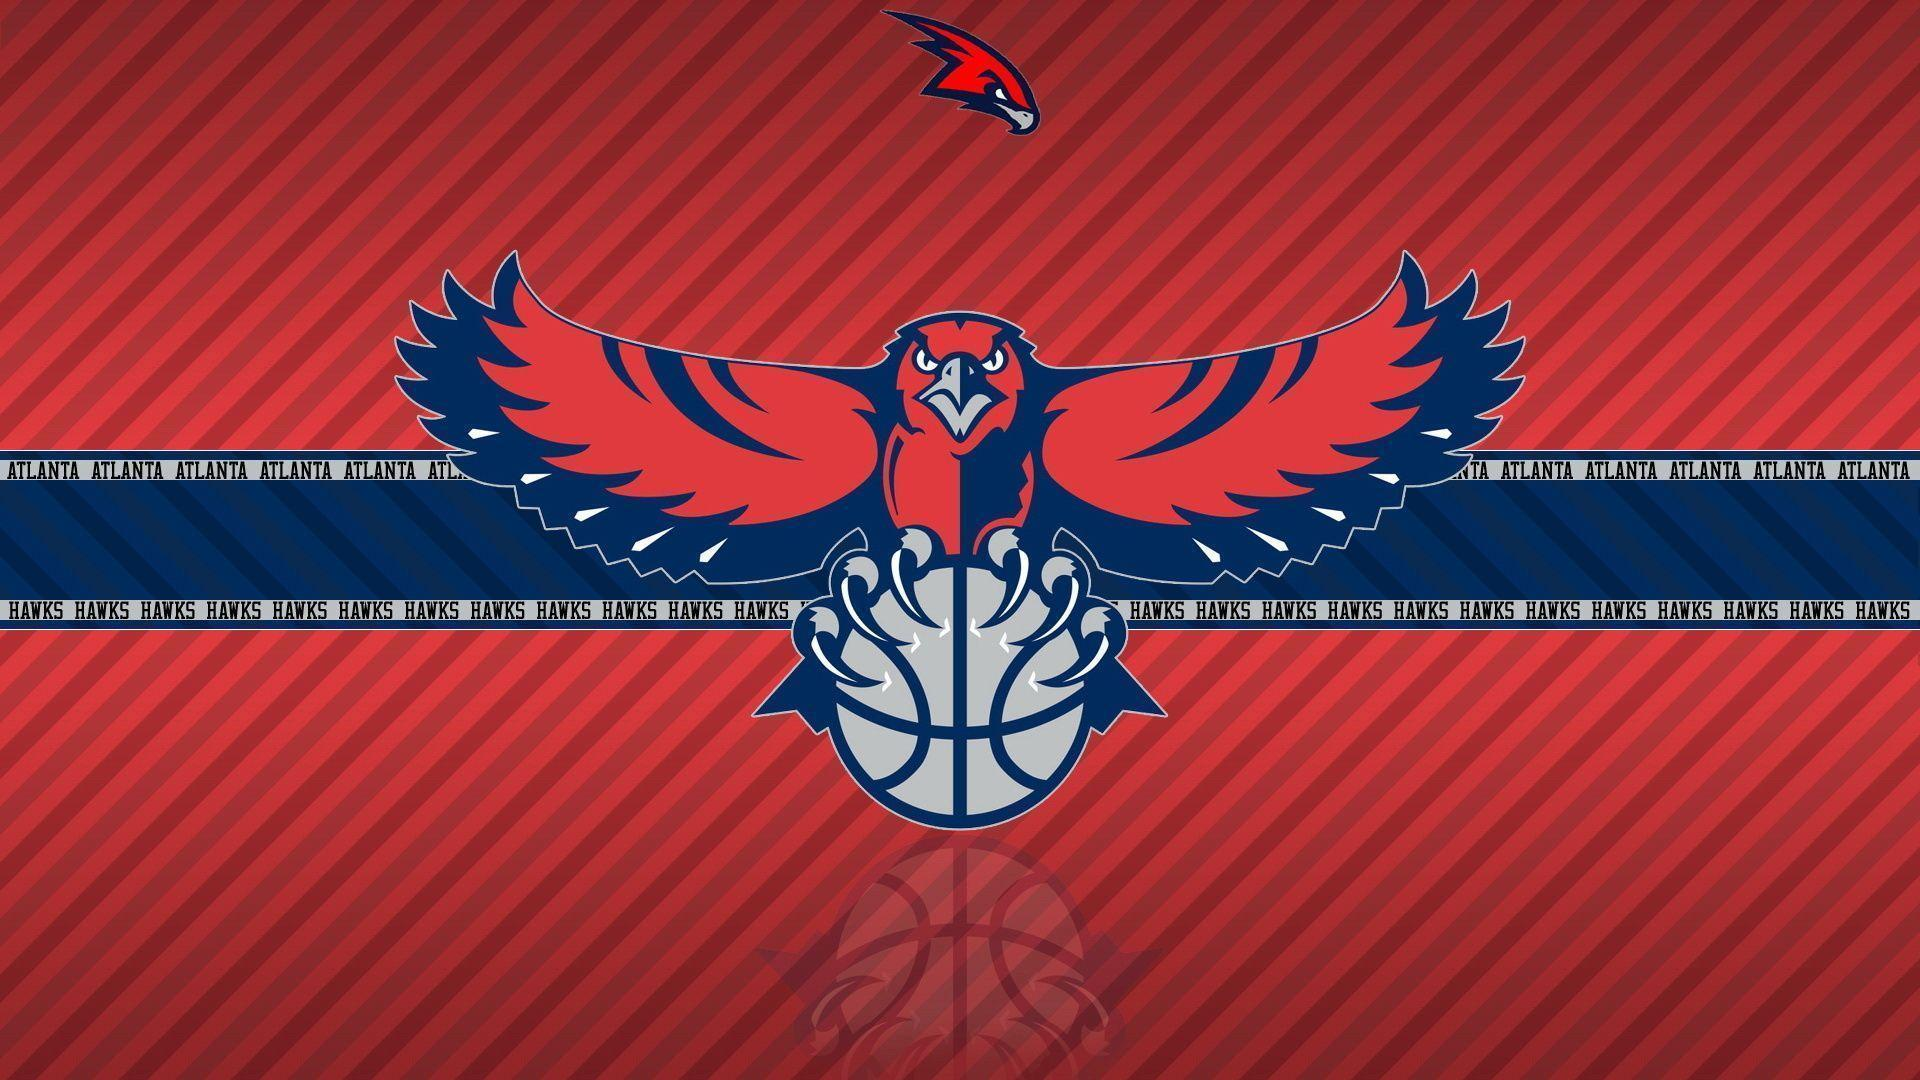 1920x1080 Basketball, Atlanta Hawks, Nba, Atlanta Hawks Logo Nba ...